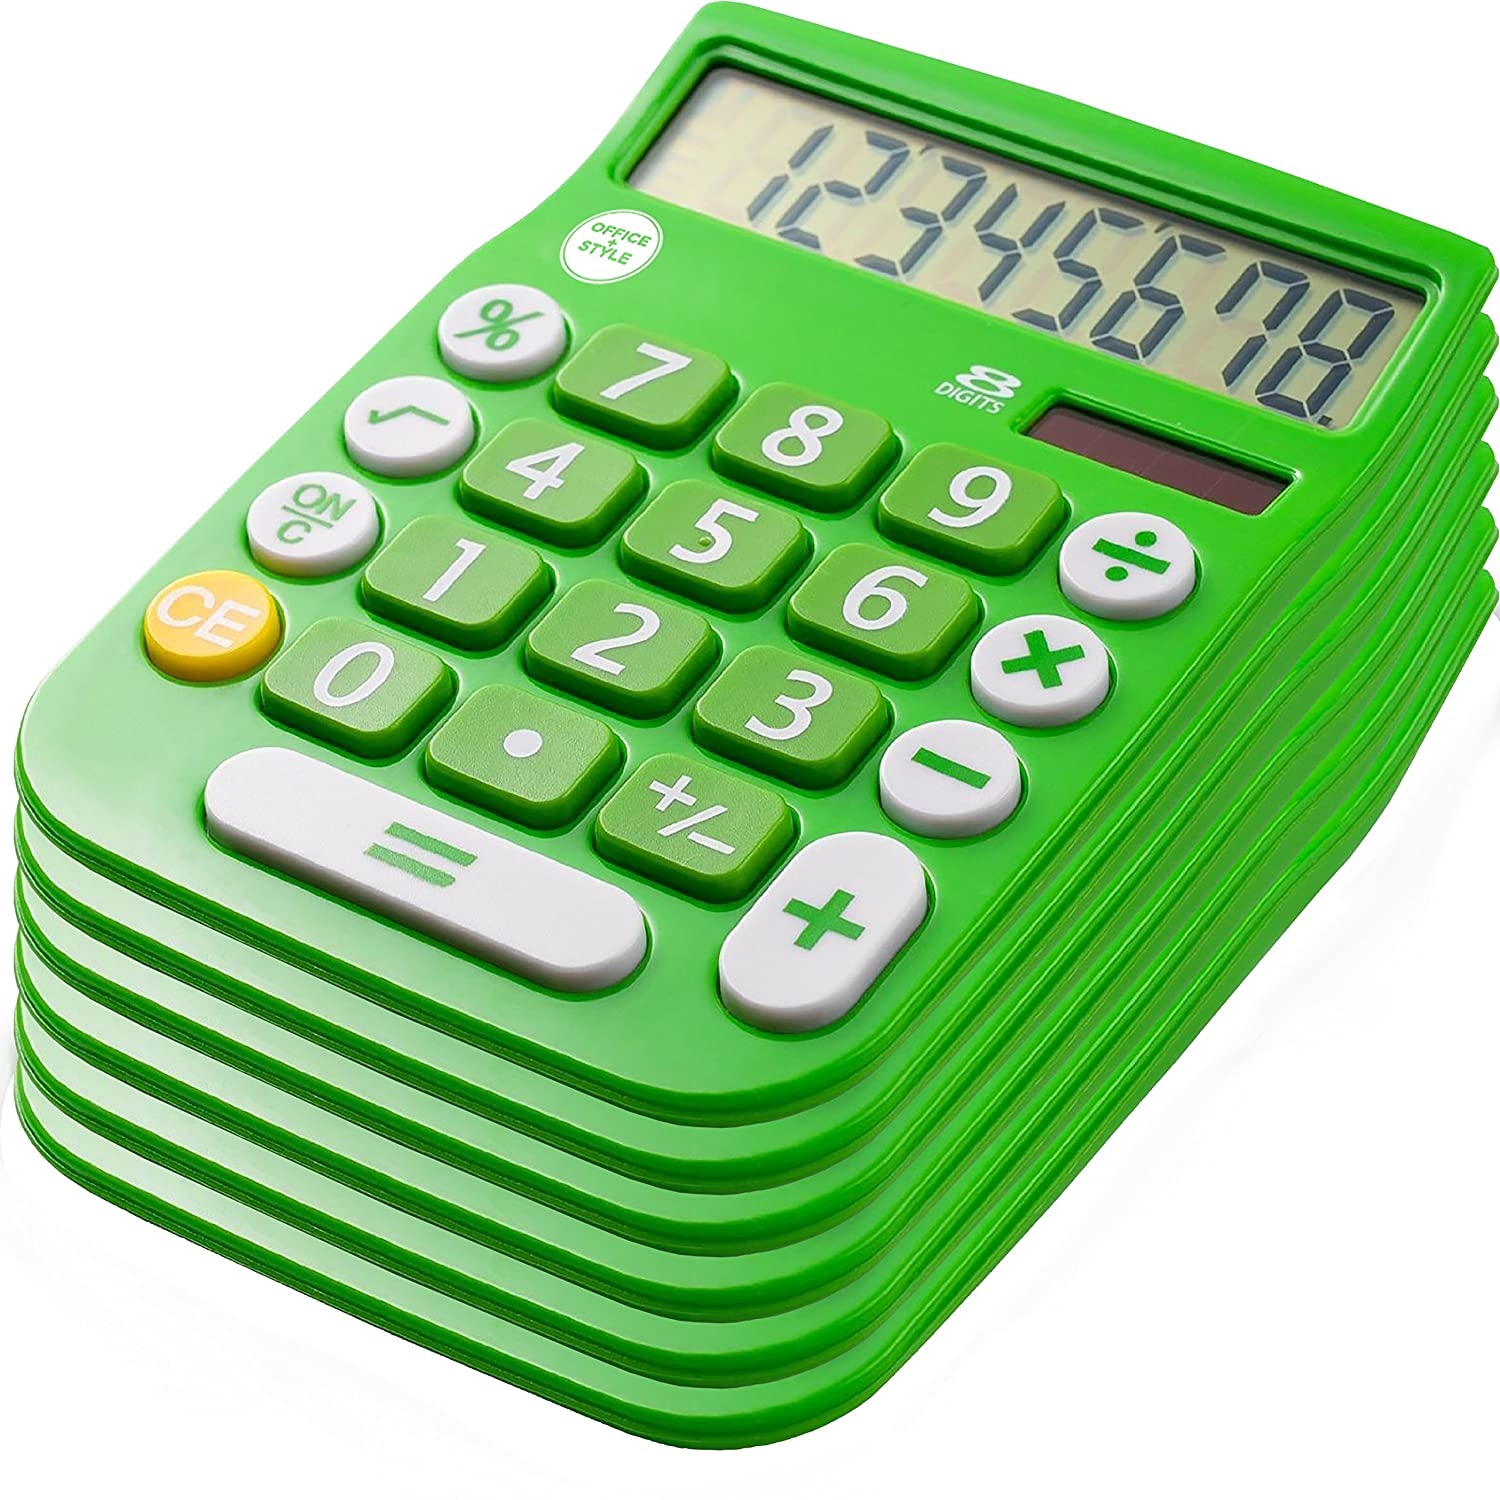 Office+Style 8 Digit Dual Powered Desktop Calculator, LCD Display, Purple Office Style OSPurlplecalc